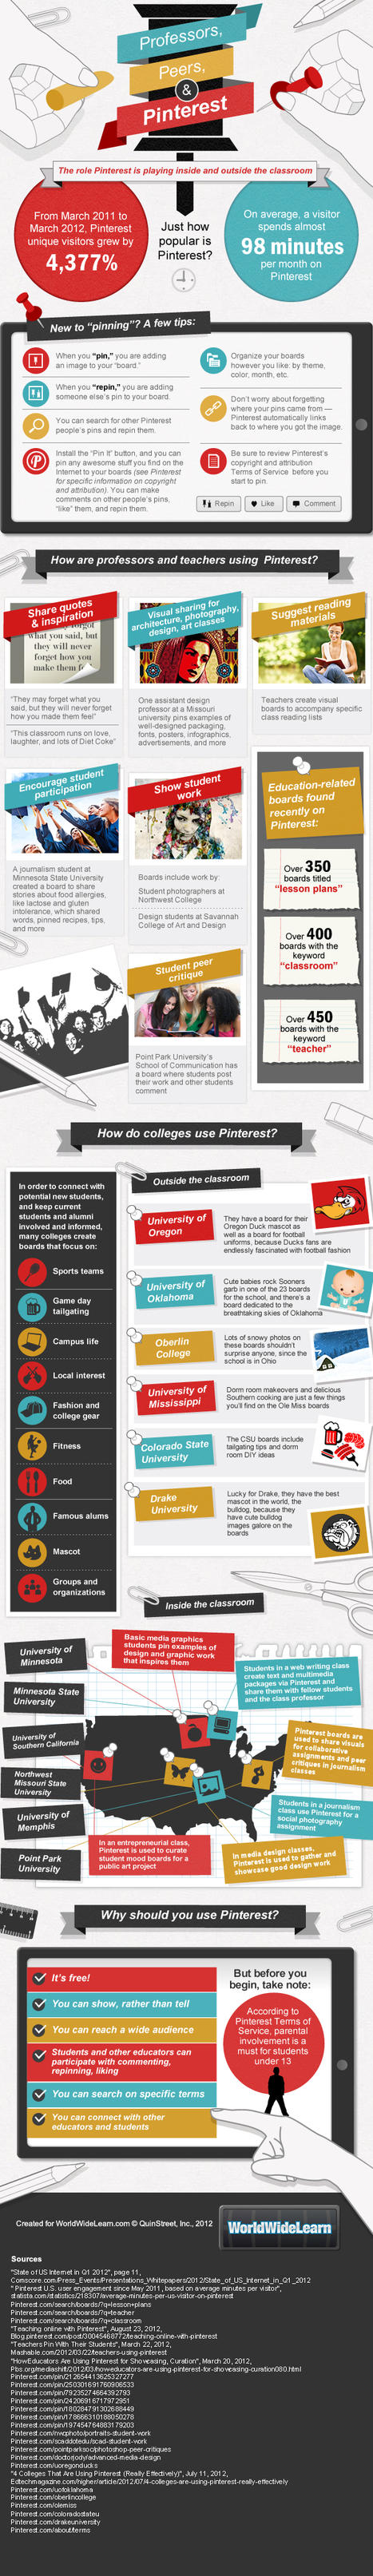 A Straightforward Guide To Using Pinterest In Education [Infographic] | Education Tussles | Scoop.it